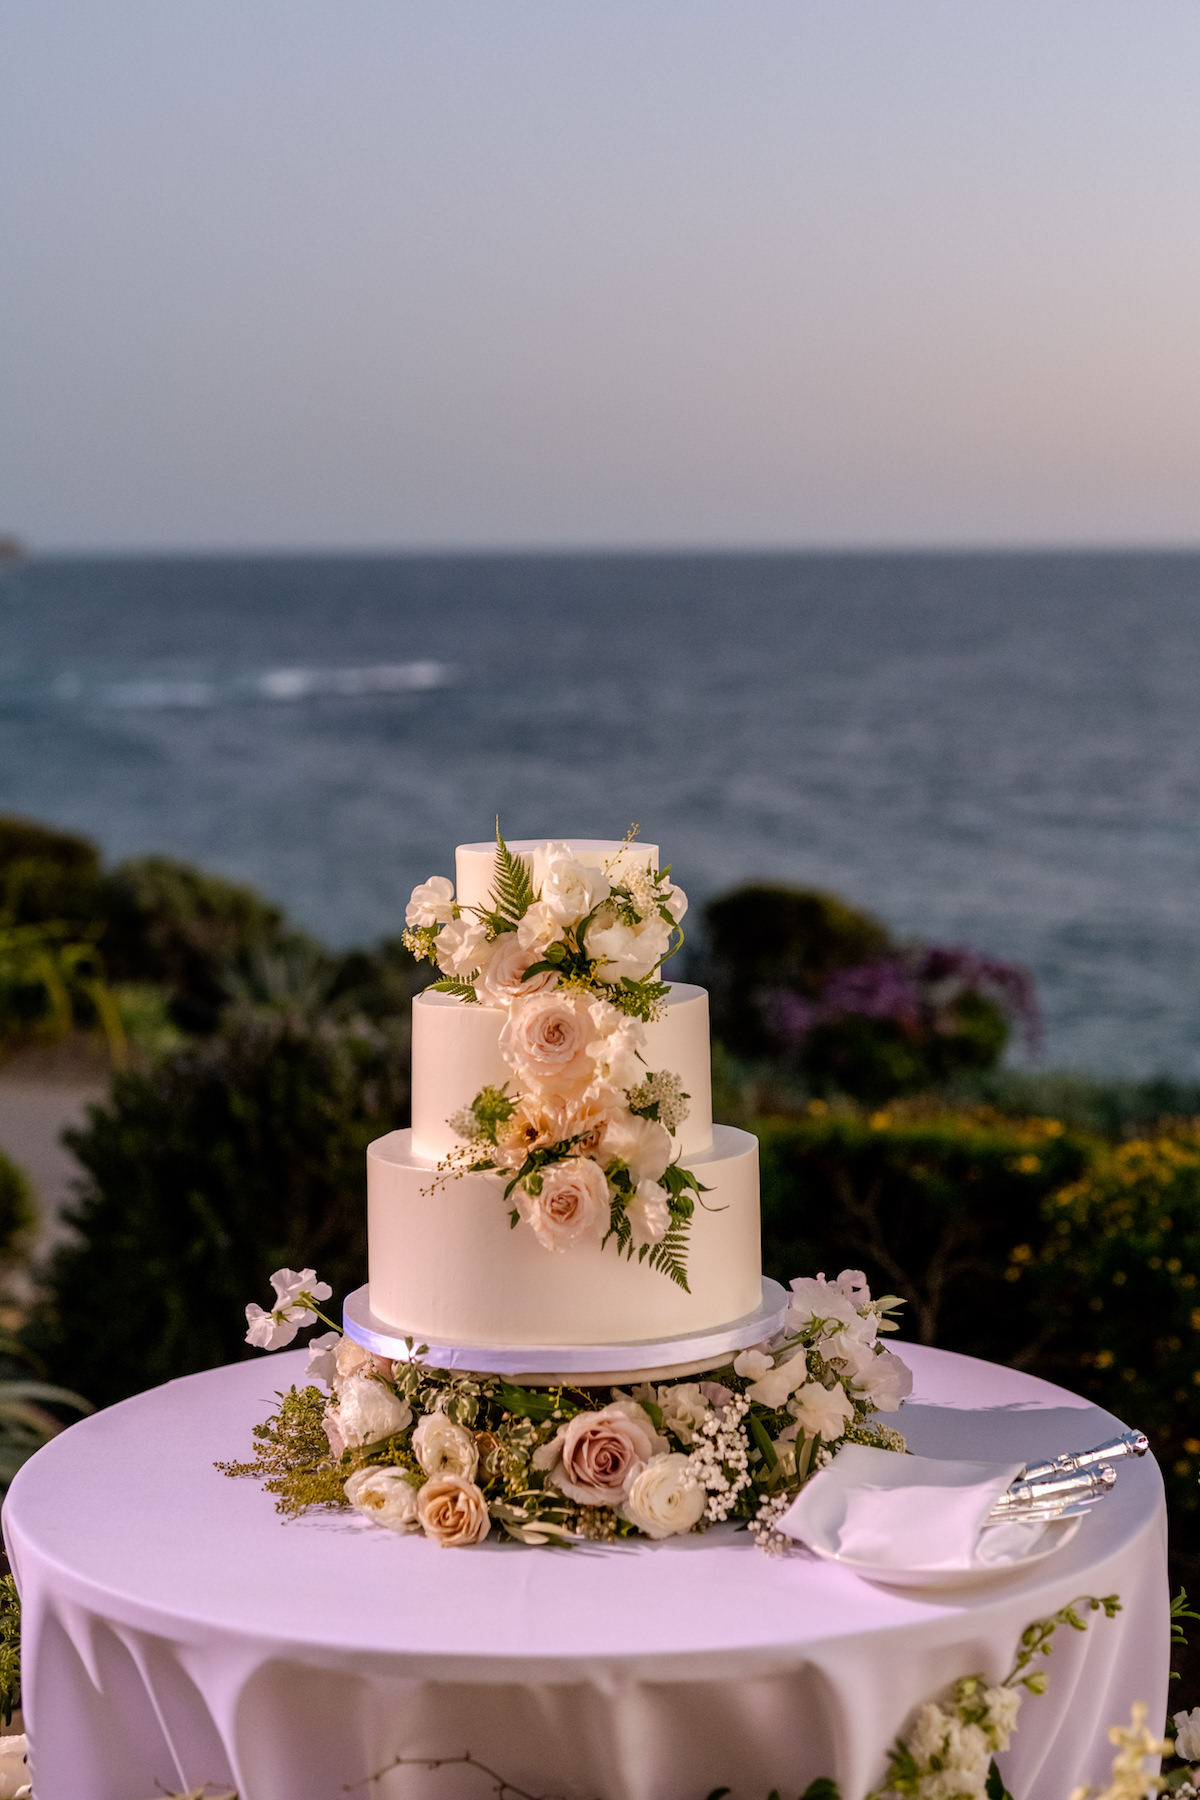 White wedding cake on table decorated with flowers - Holly Sigafoos Photo